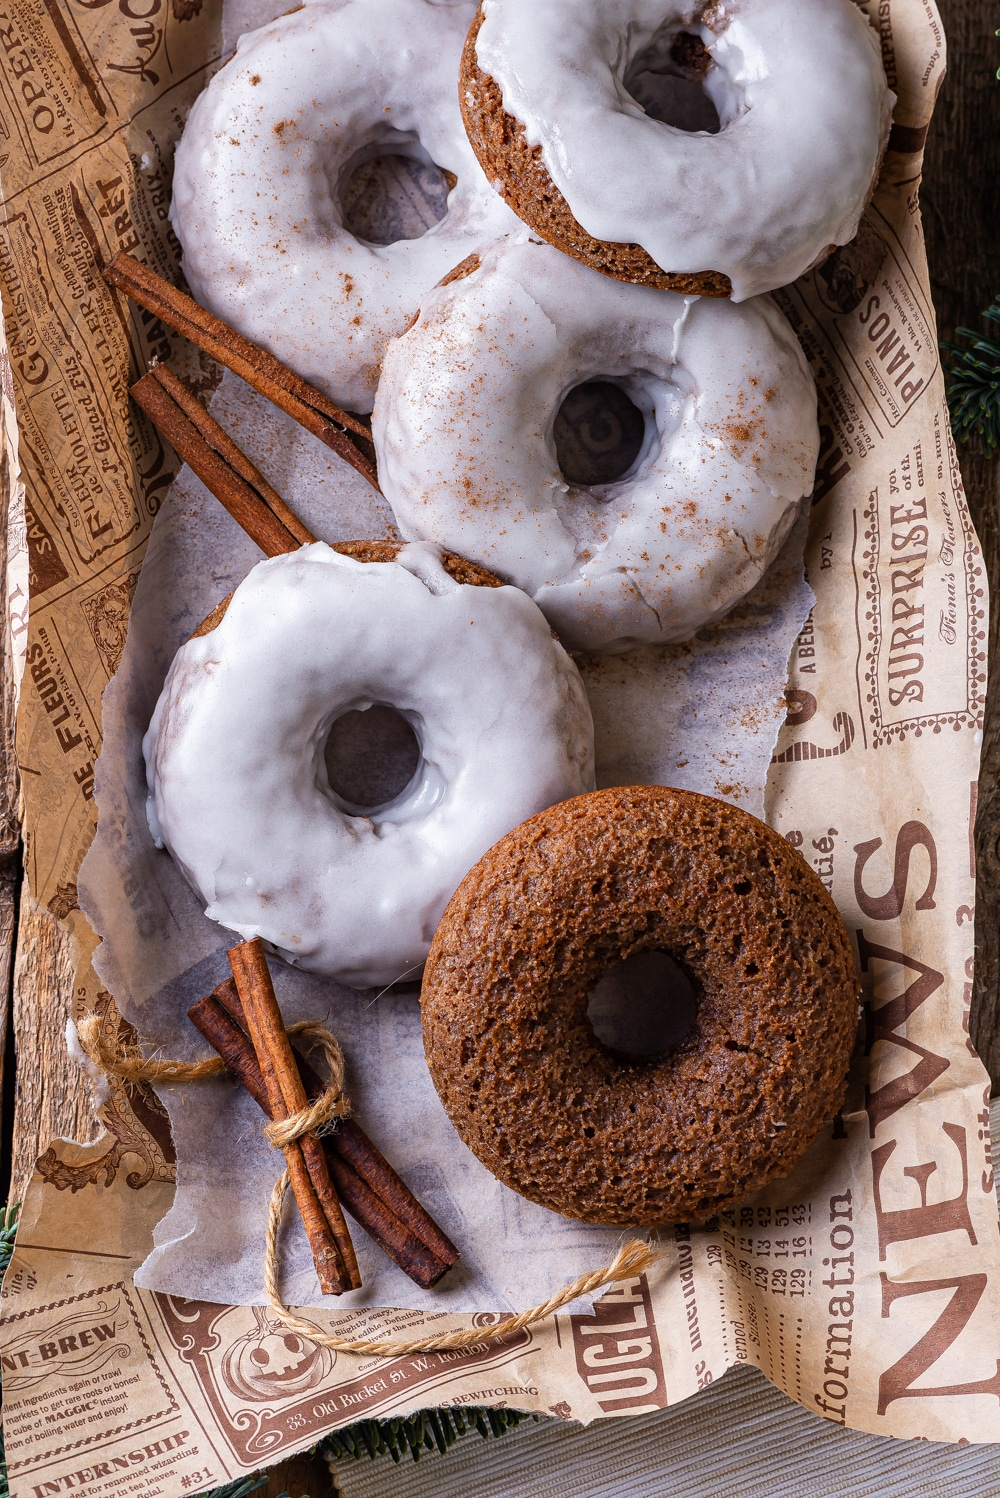 Four glazed gingerbread donuts and one plain gingerbread donut overlapping on a piece of paper. A bundle of cinnamon is next to the plain donut.